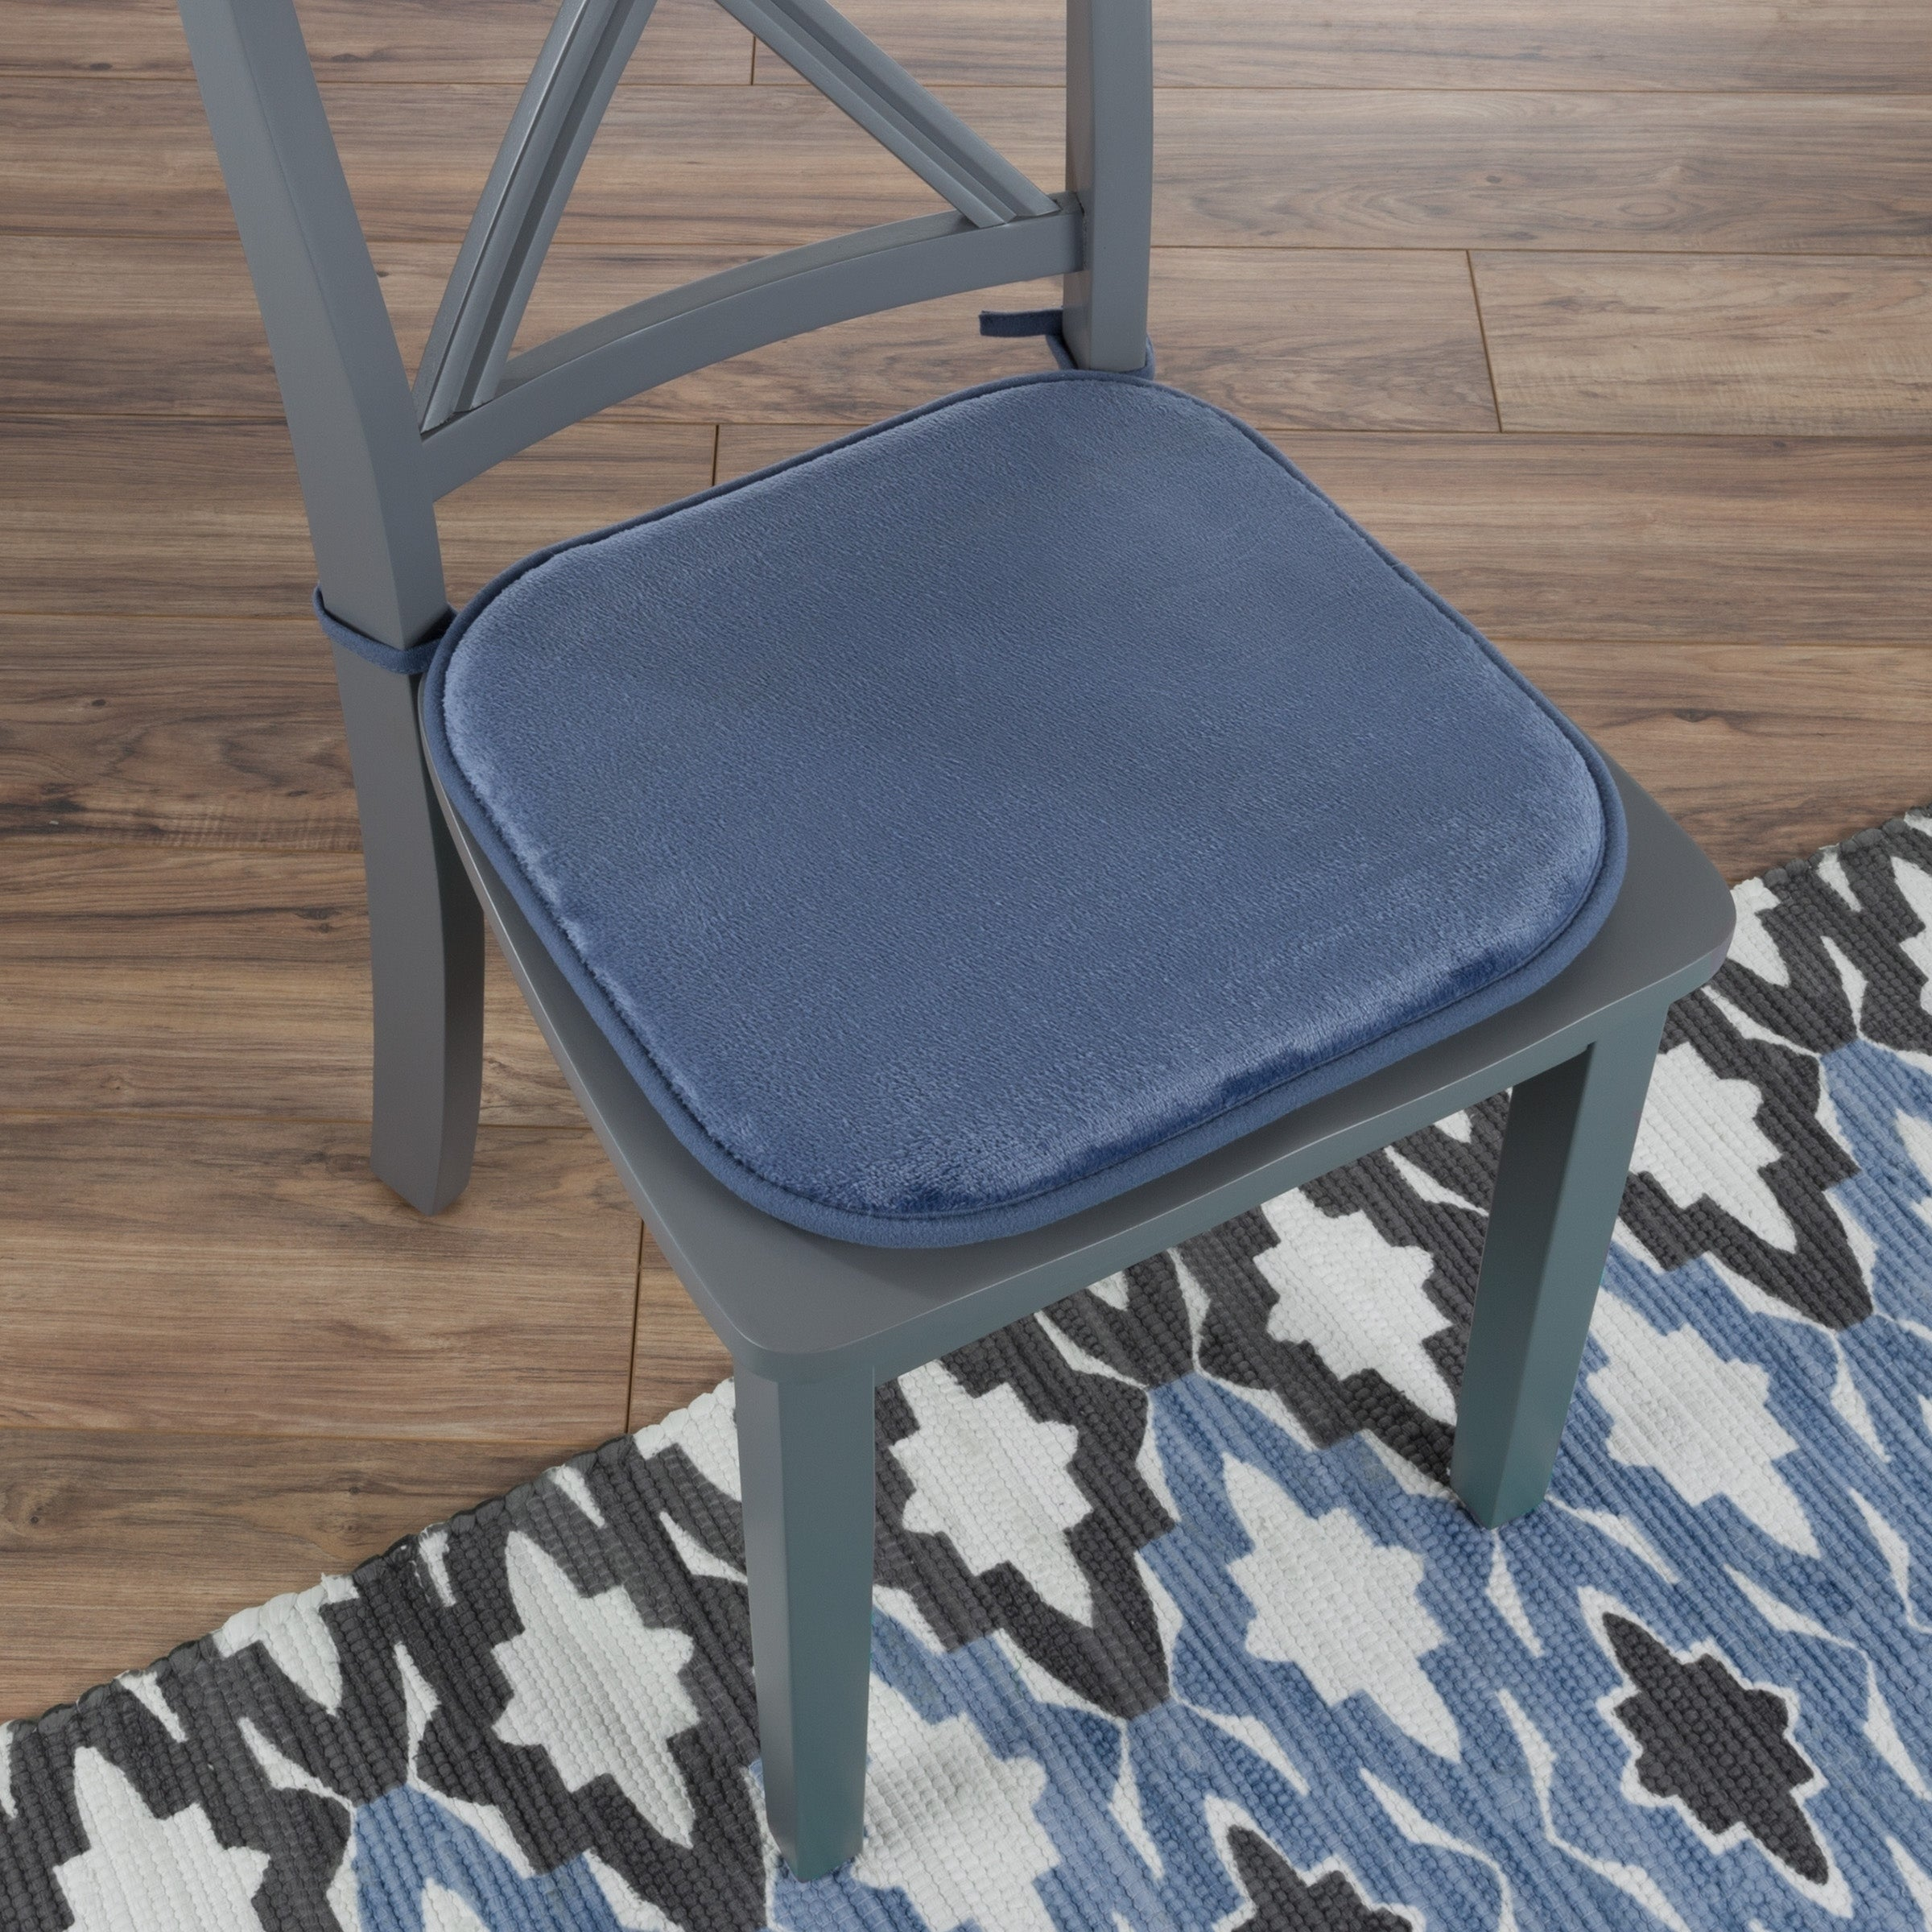 Memory Foam Chair Cushion 16x 1625 With Ties By Windsor Home